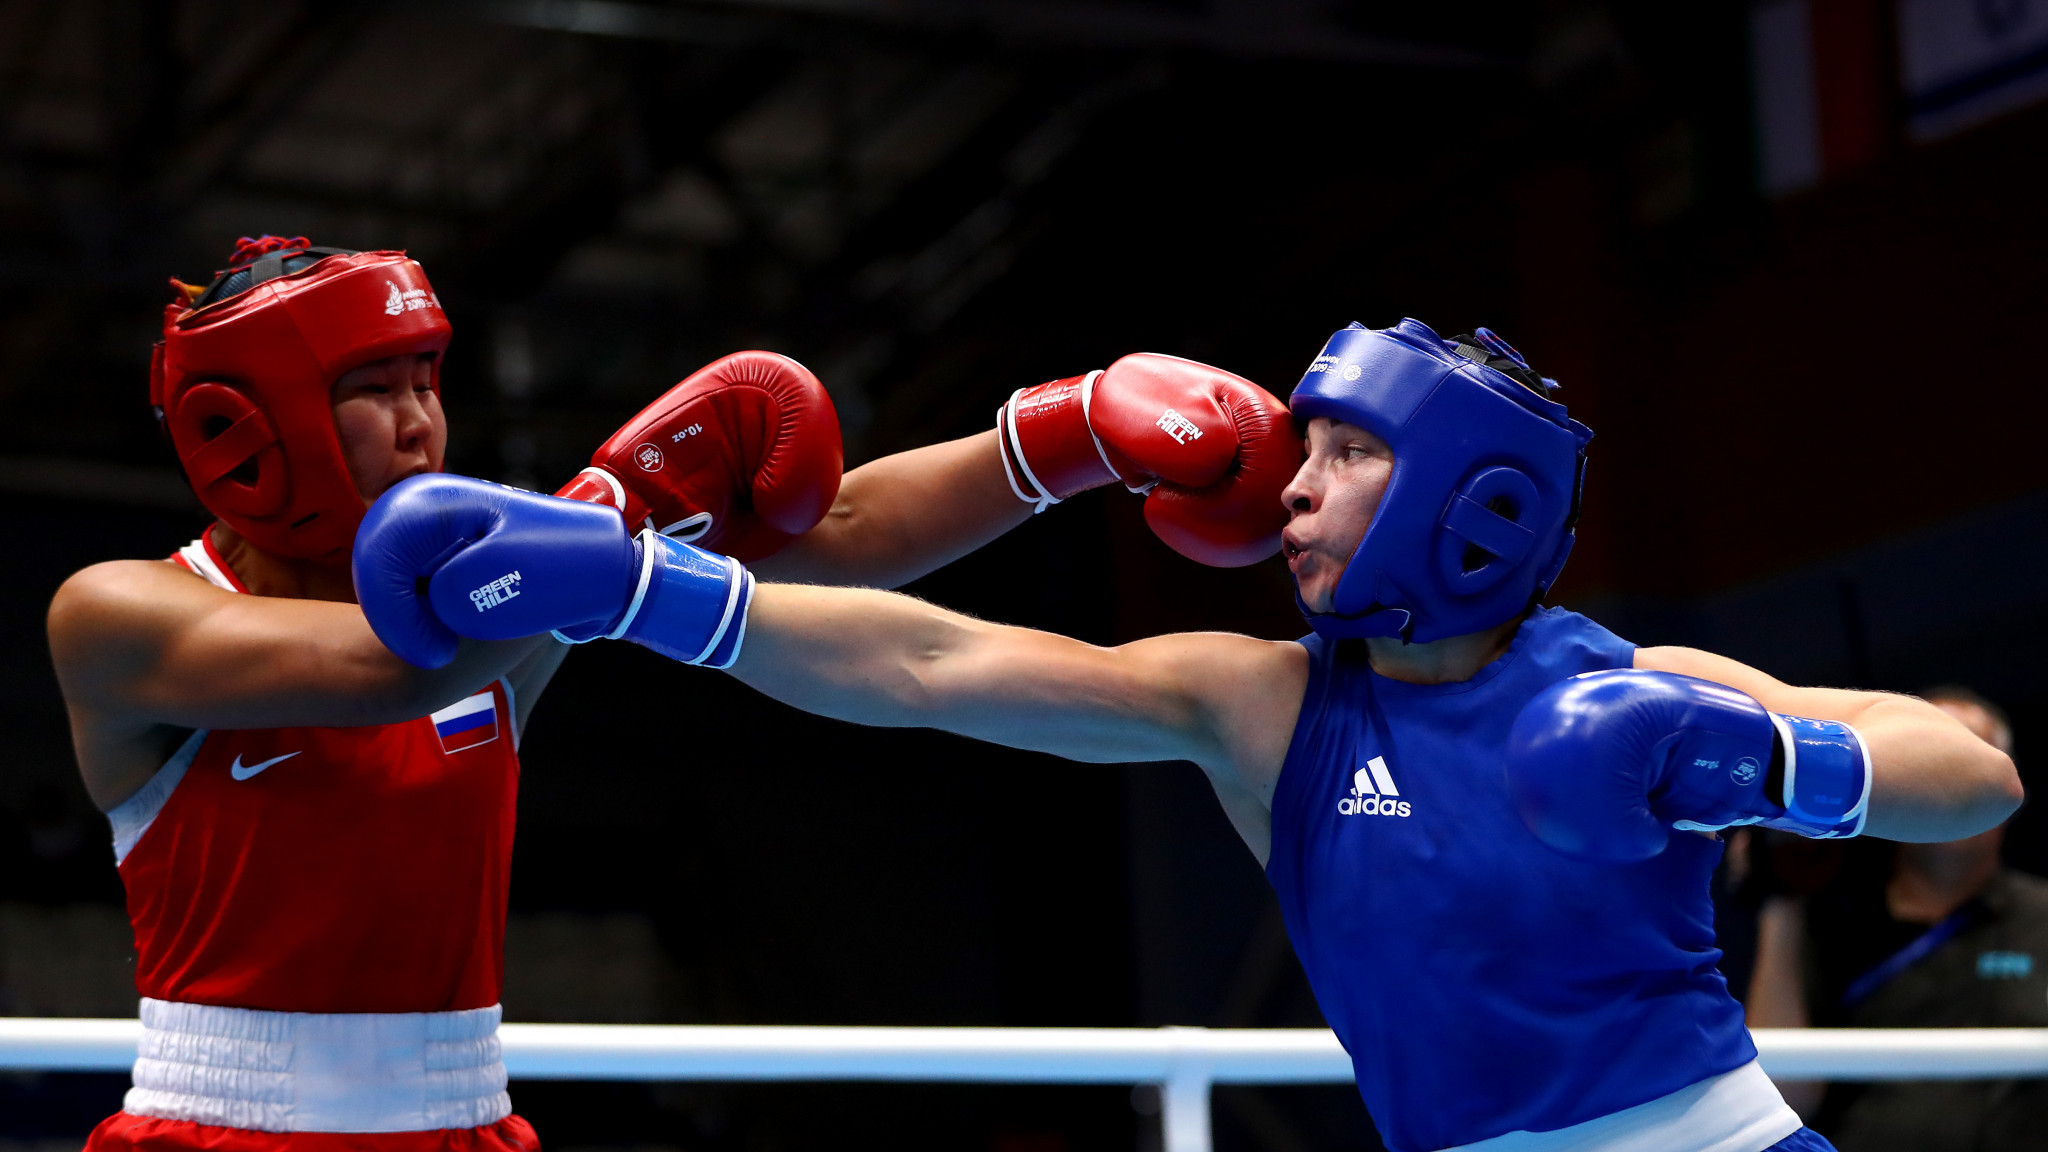 Britain's McCormack and Price top boxing world rankings as Tokyo 2020 countdown continues